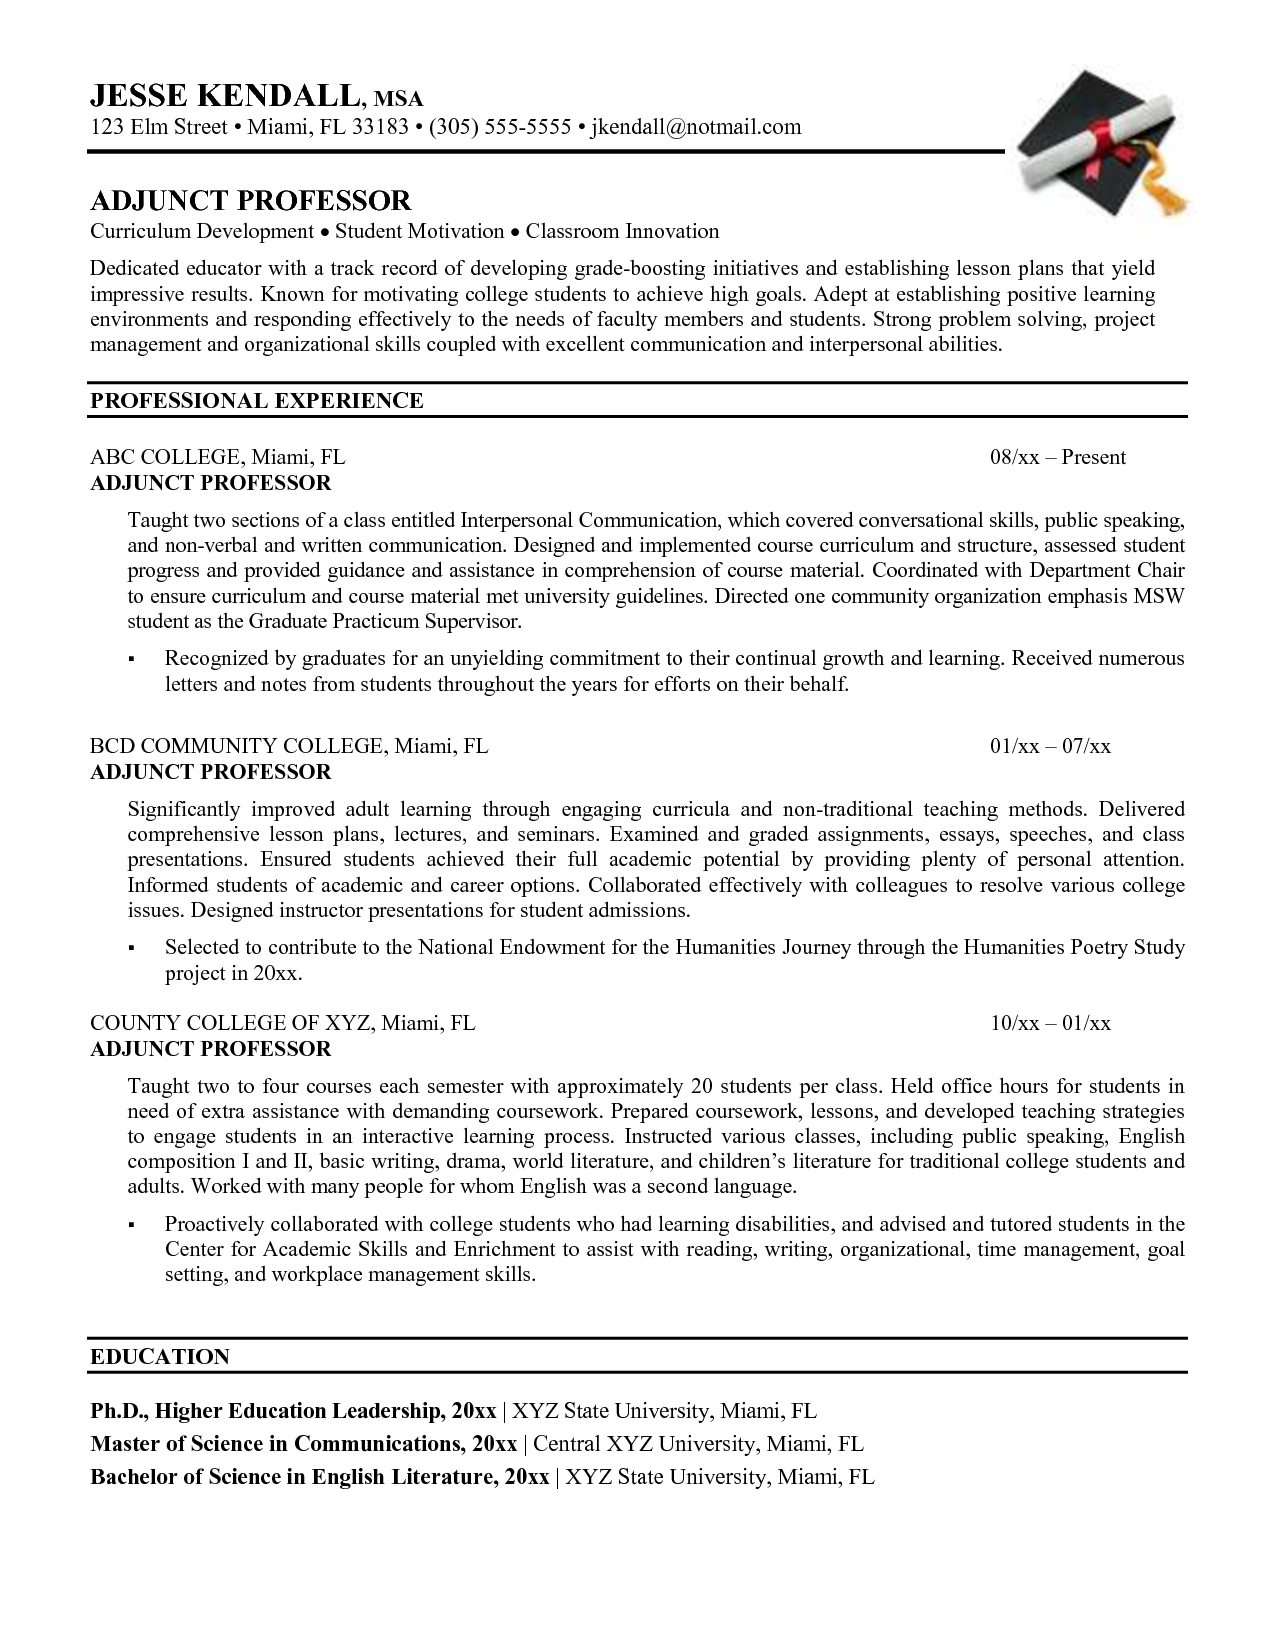 curriculum vitae template education queensland assistant professor resume university best free home design idea inspiration - Curriculum Vitae For University Application